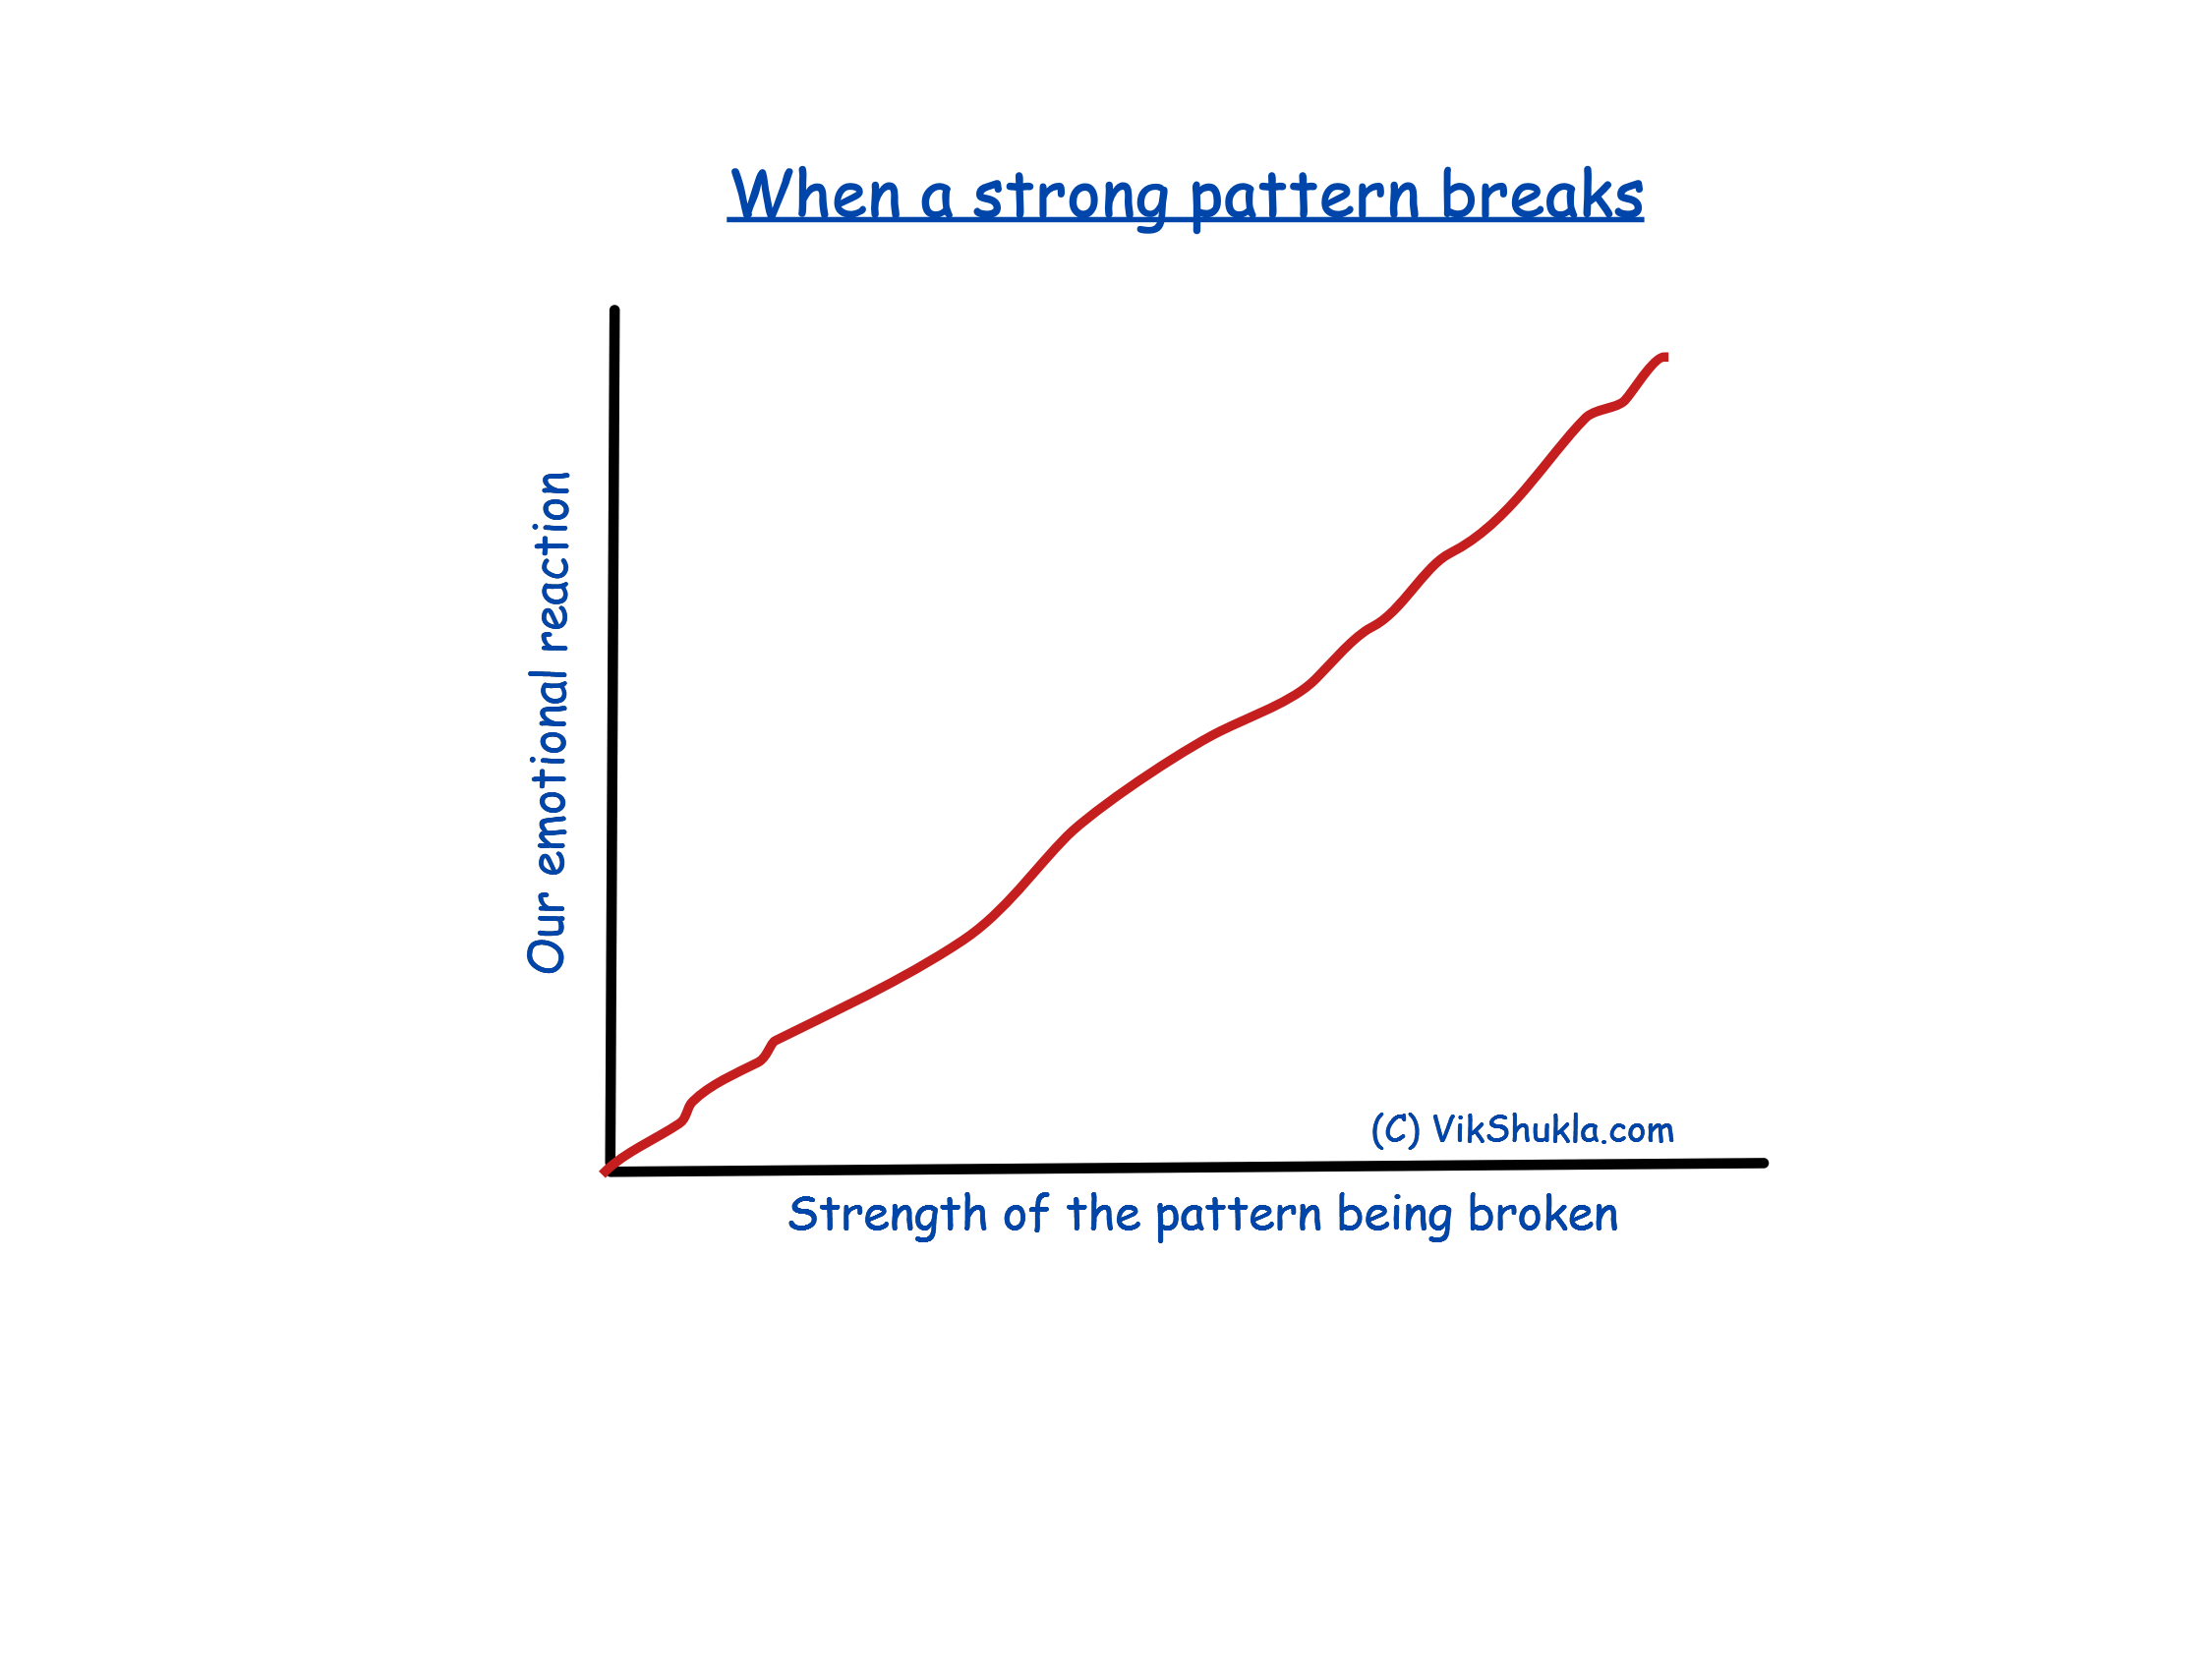 Our emotional reaction when a strong pattern is broken. Image by VikShukla.com